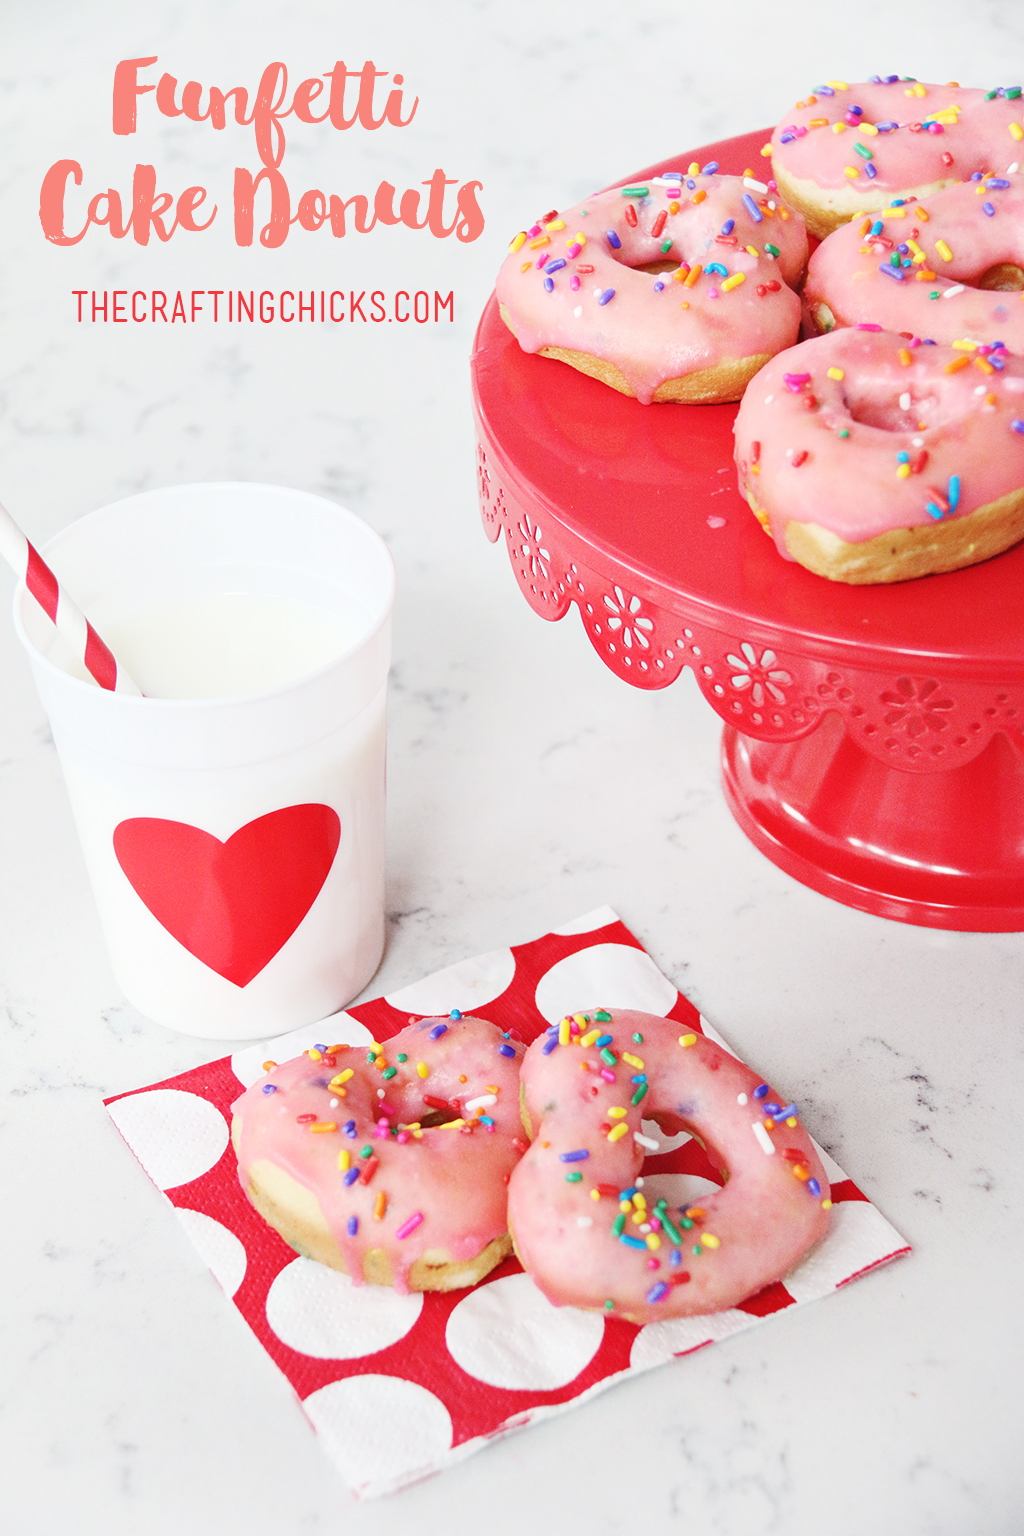 Funfetti Cake Donuts - A great treat or dessert to take to a party!